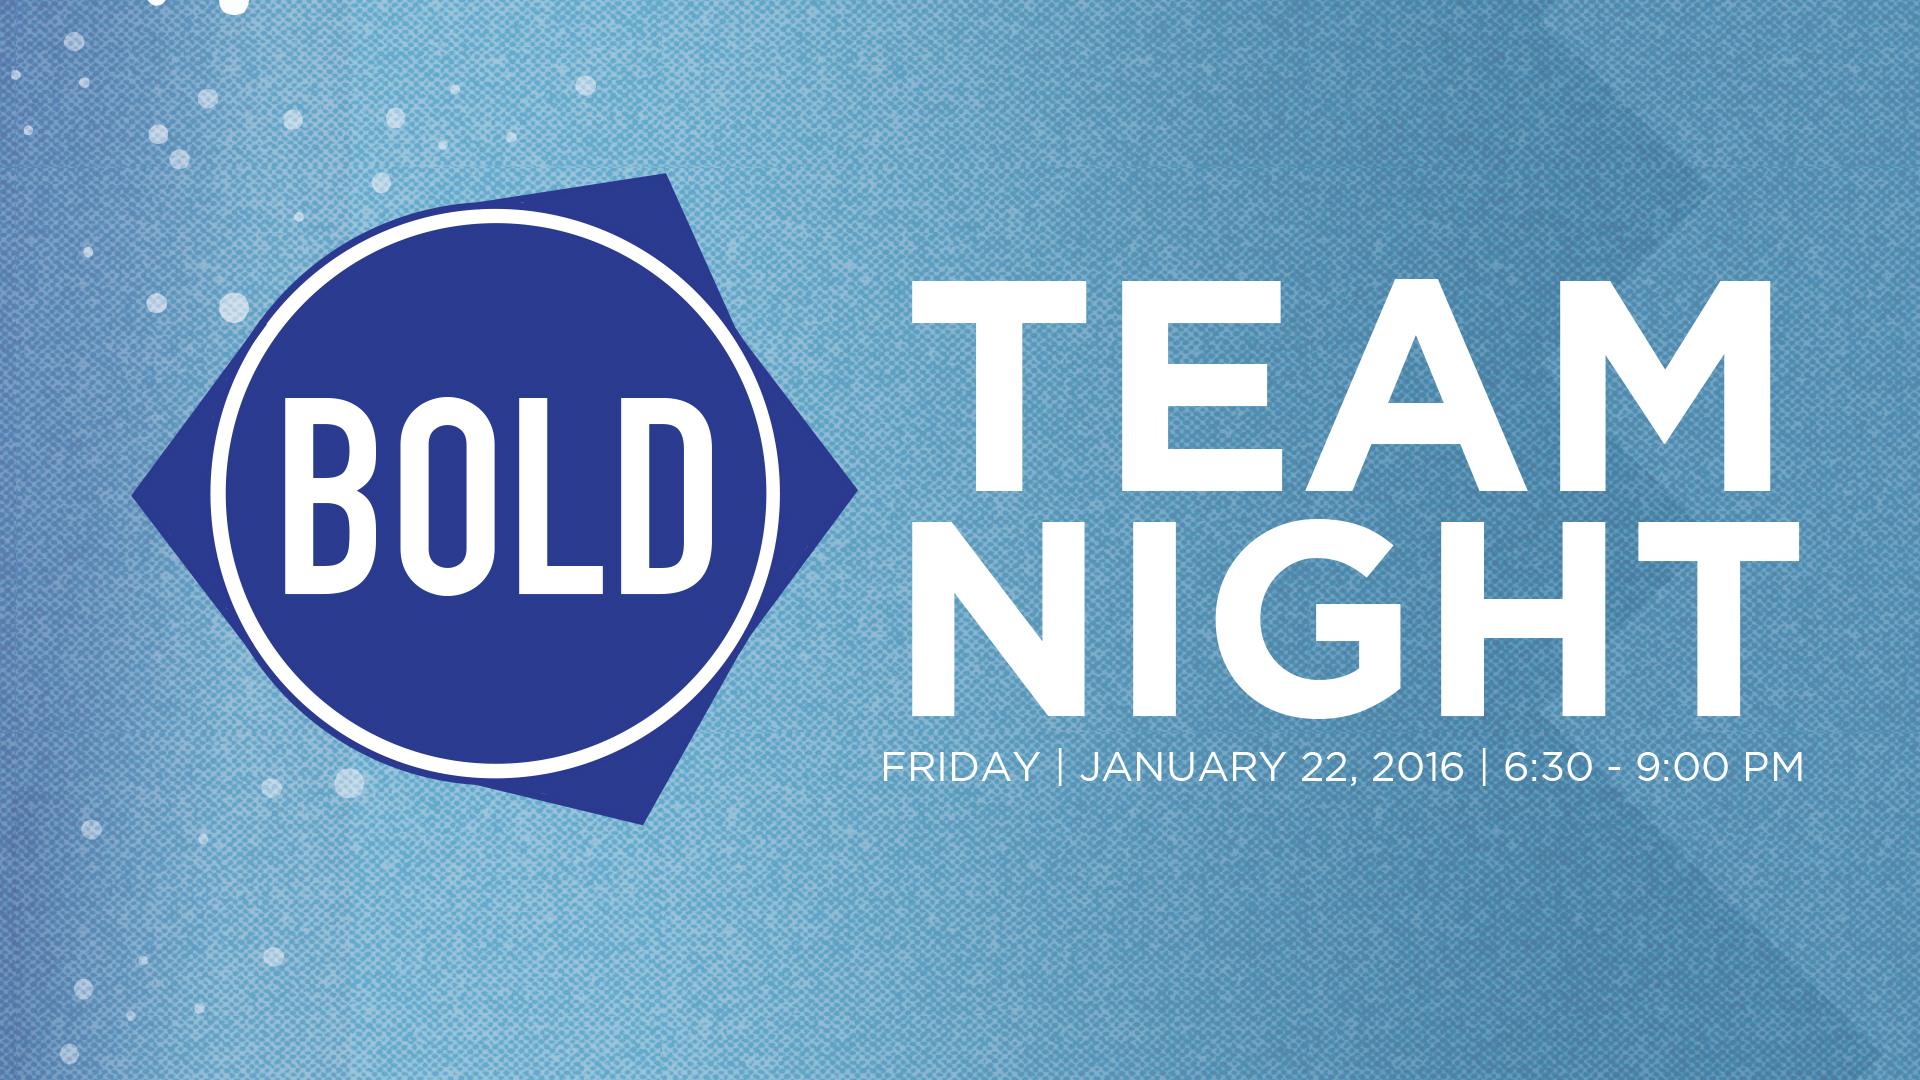 BOLD TEAM NIGHT (For all Leaders and Volunteers) -JANUARY 22nd 6:30-9:00 PM   We are coming up on the one year anniversary of  BOLD!  We want to  CELEBRATE all that God has been doing, give updates on where we are and look ahead to where we believe God is taking us!  We want every leader and volunteer to join us for one massive  TEAM NIGHT!  We will have plenty of food (COME HUNGRY!), desserts, music and surprises. Spouses are invited and childcare is provided for birth thru 5th grade. Childcare reimbursements will also be available.  Please RSVP  HERE to reserve childcare and to let us know how much food to get.